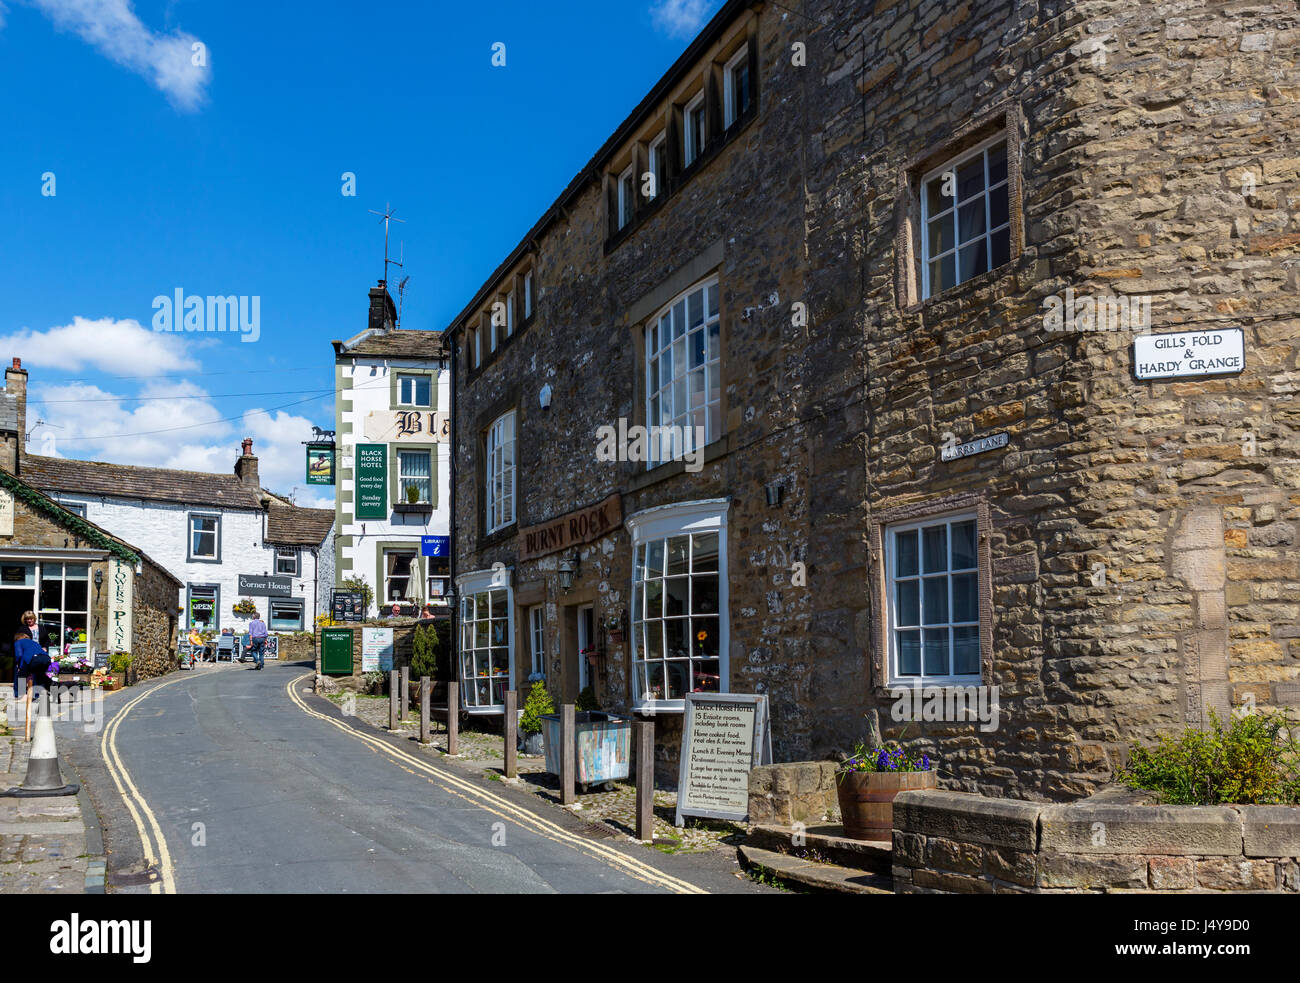 Street in the traditional English village of Grassington, Wharfedale, Yorkshire Dales National Park, North Yorkshire, England, UK. Stock Photo